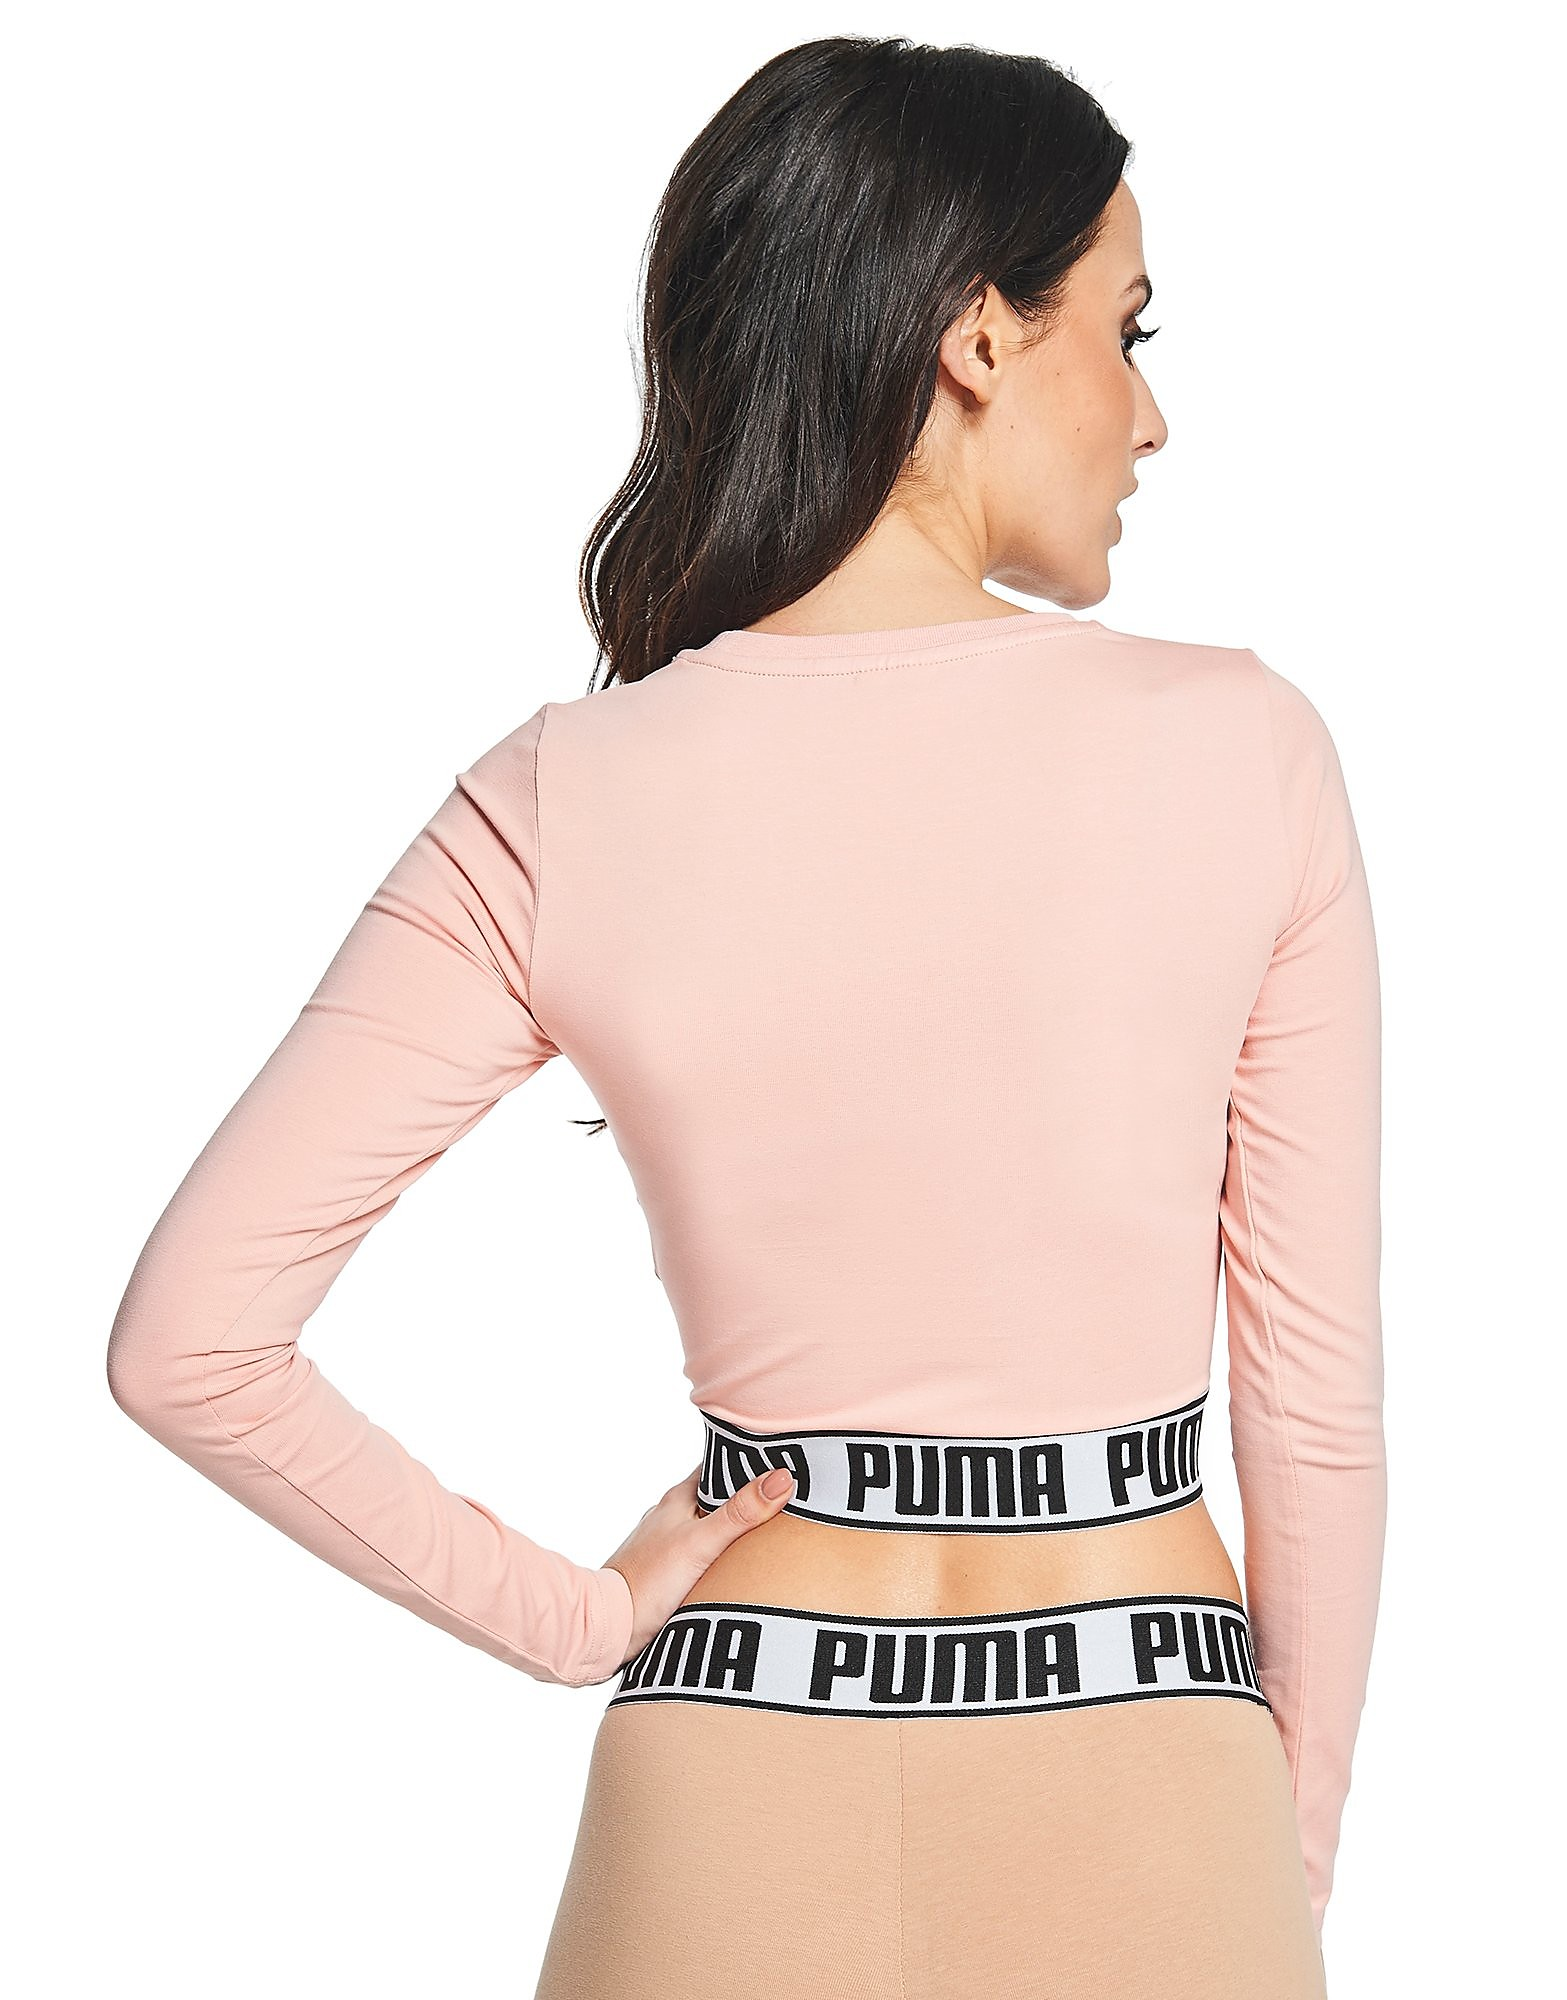 PUMA Long Sleeved Crop T-Shirt